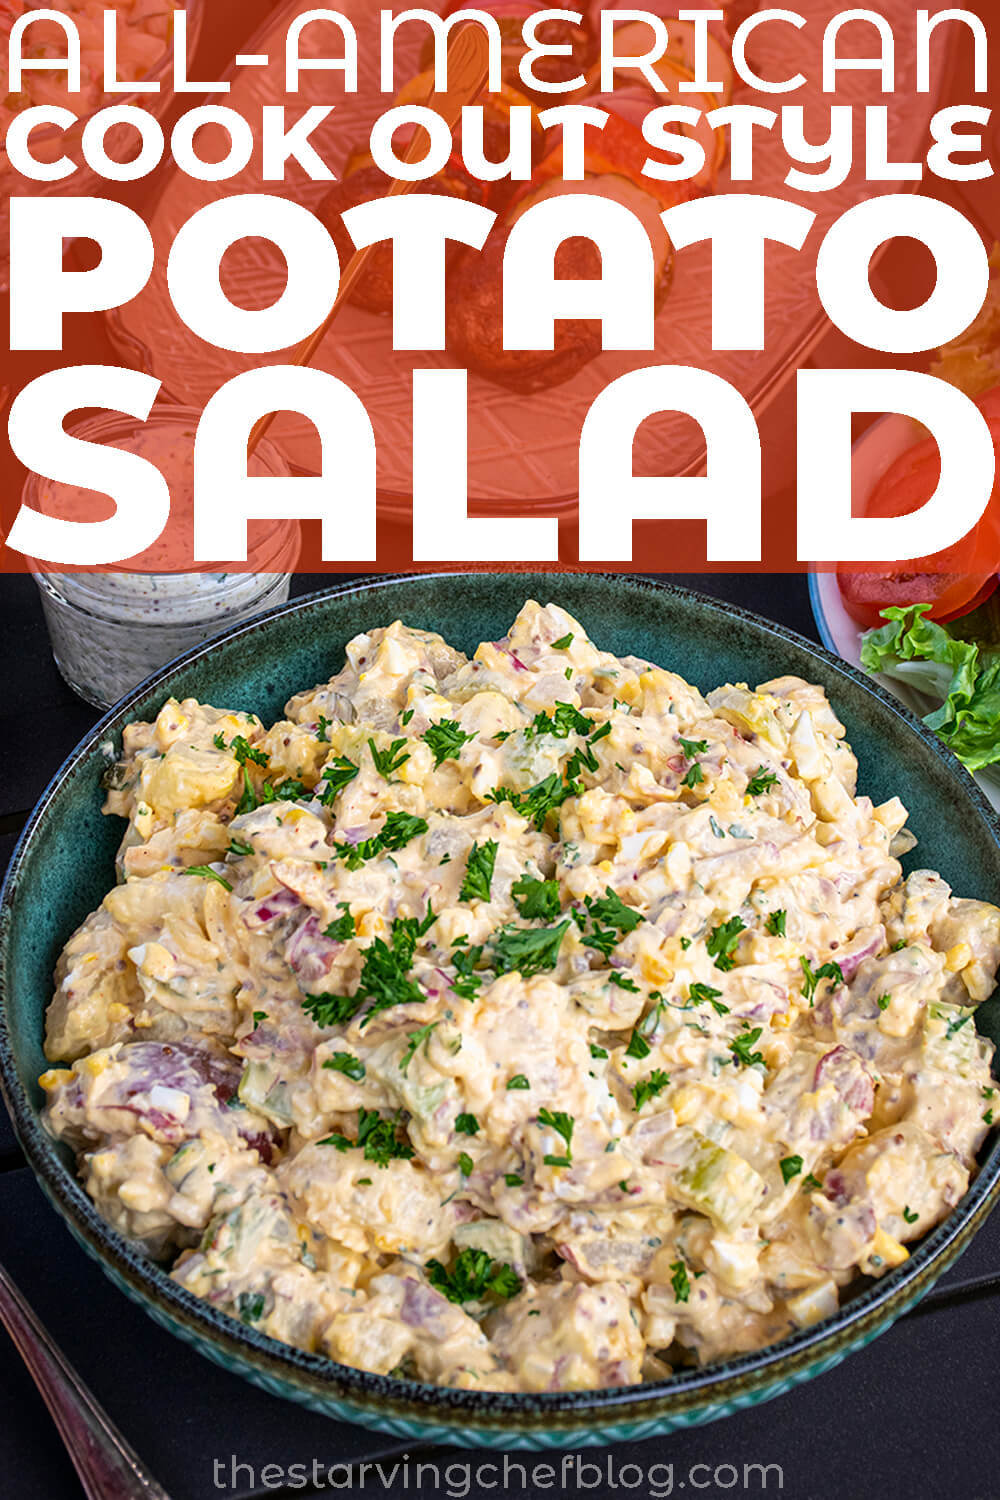 All-American 'Gourmet' Red Skin Potato Salad